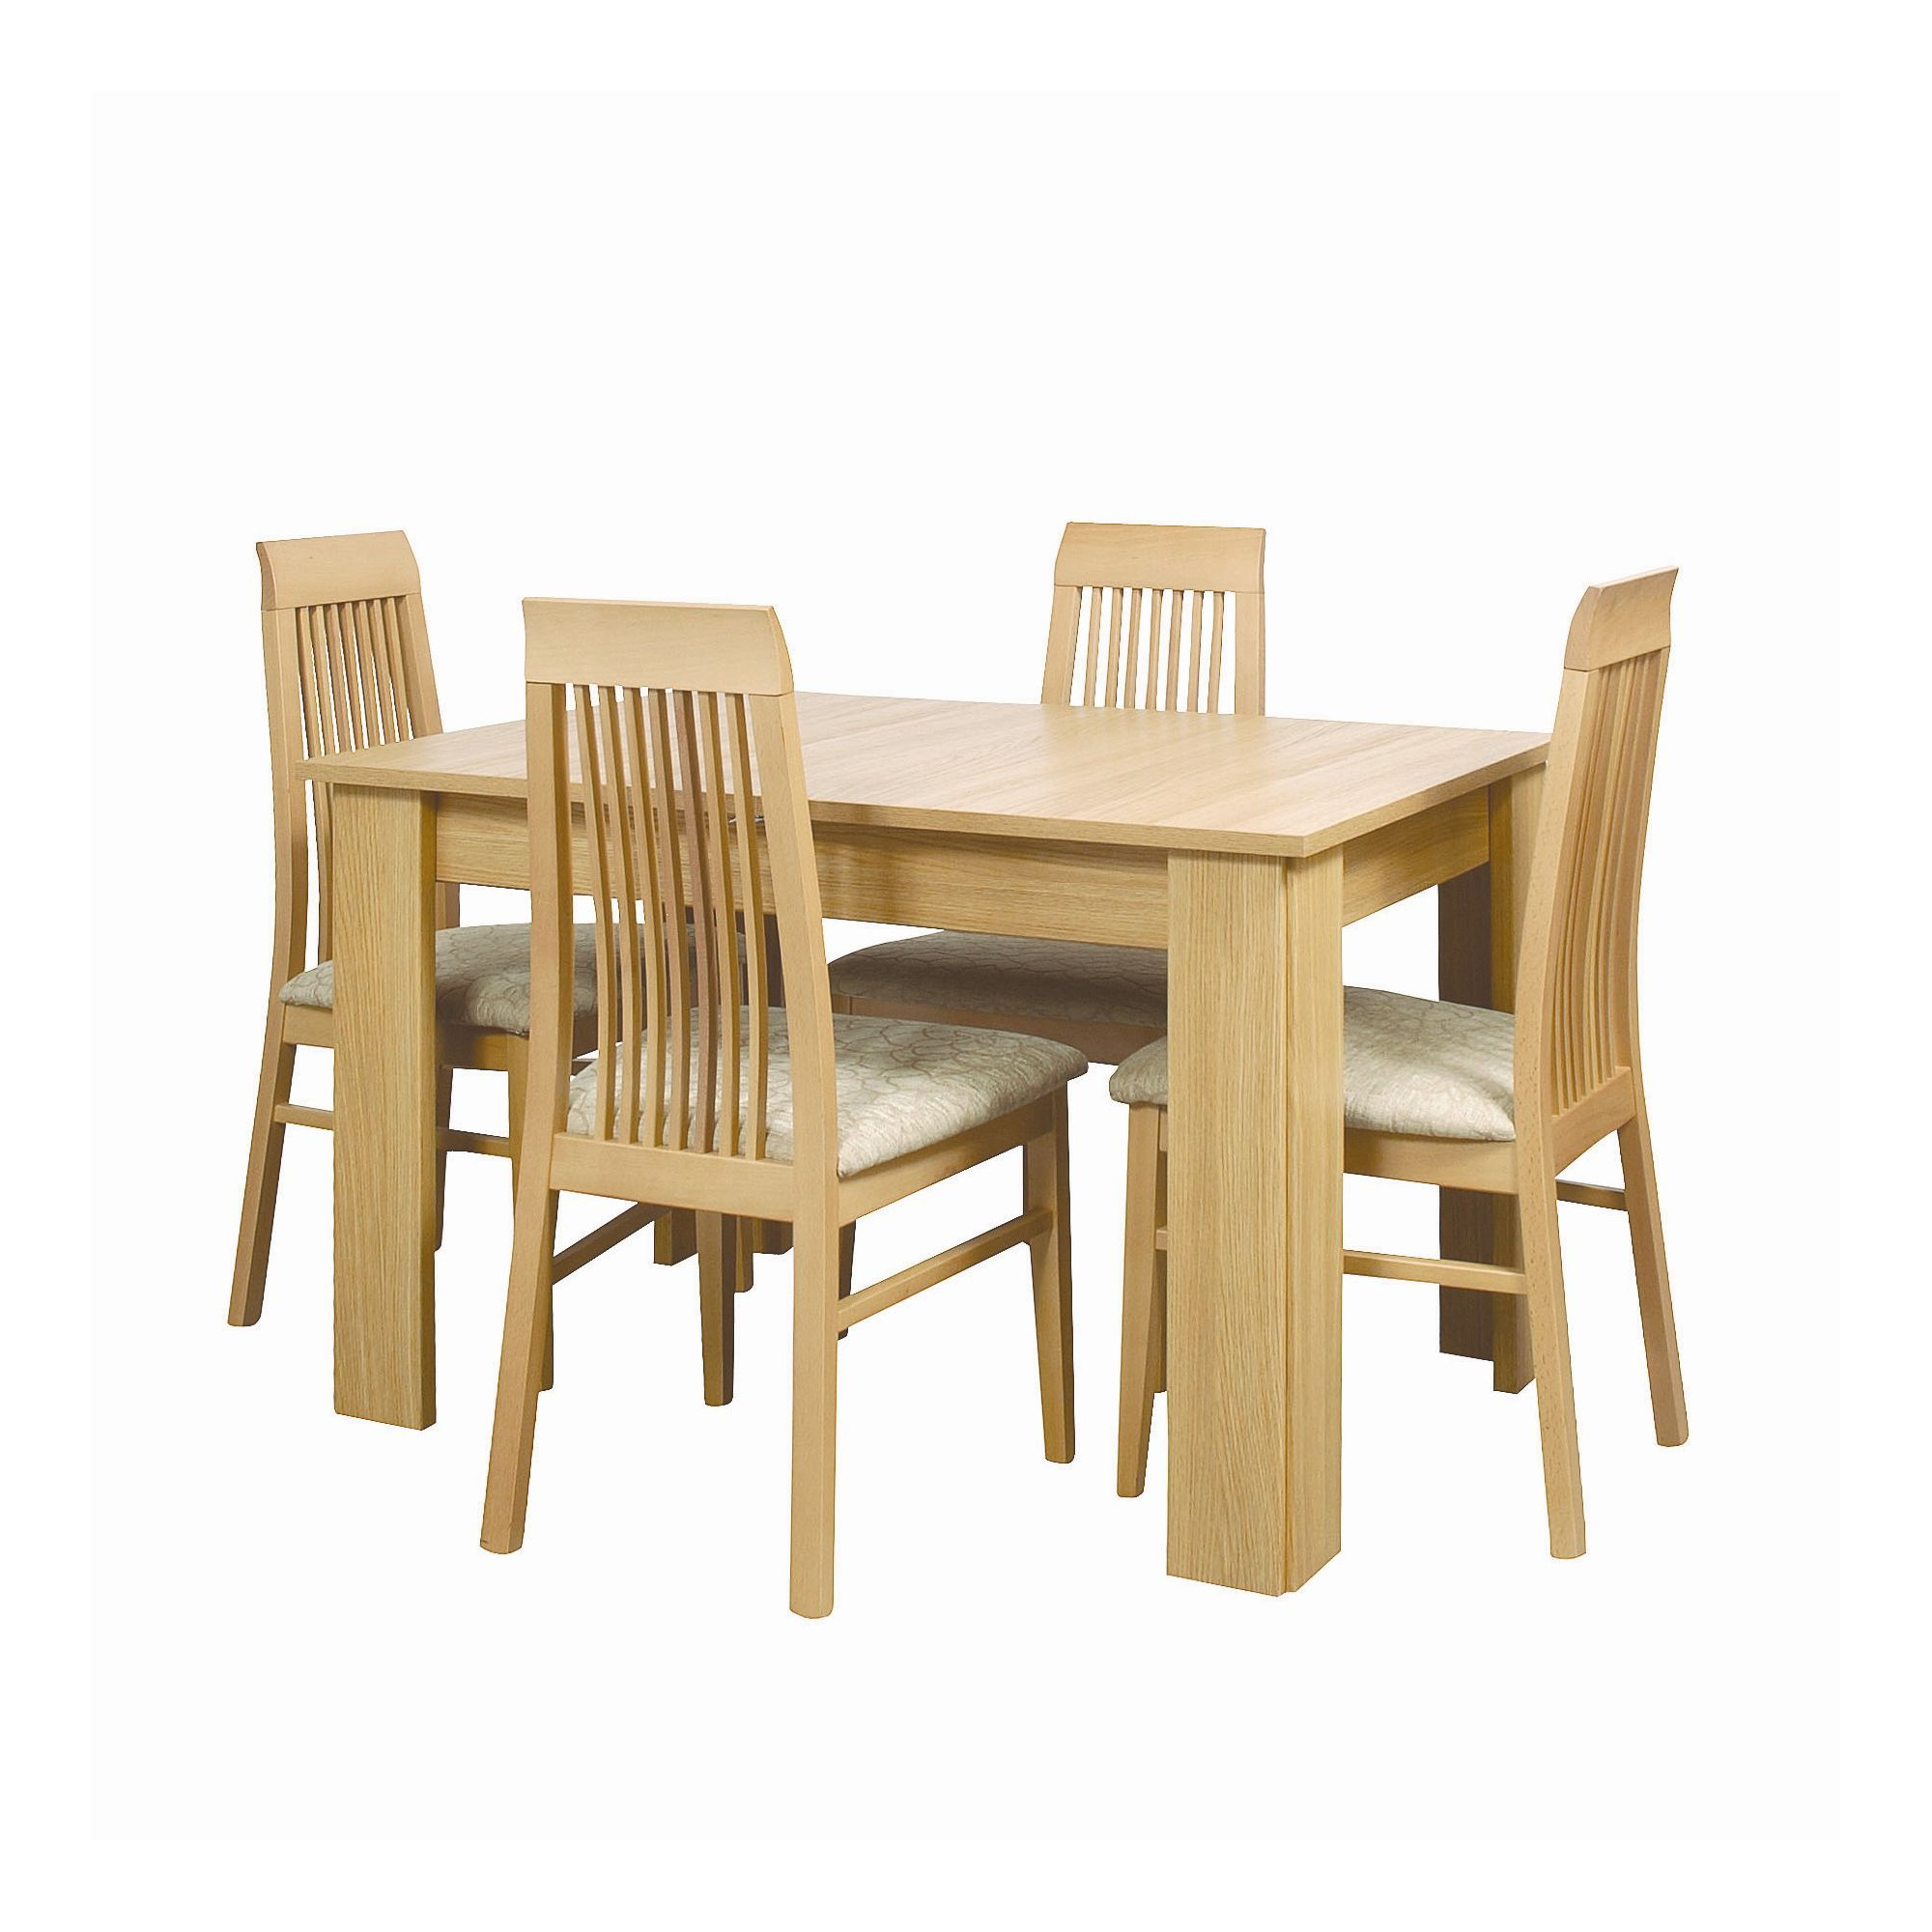 Other Caxton Huxley 4 Leg Extending Dining Table with 4 Chairs in Light Oak